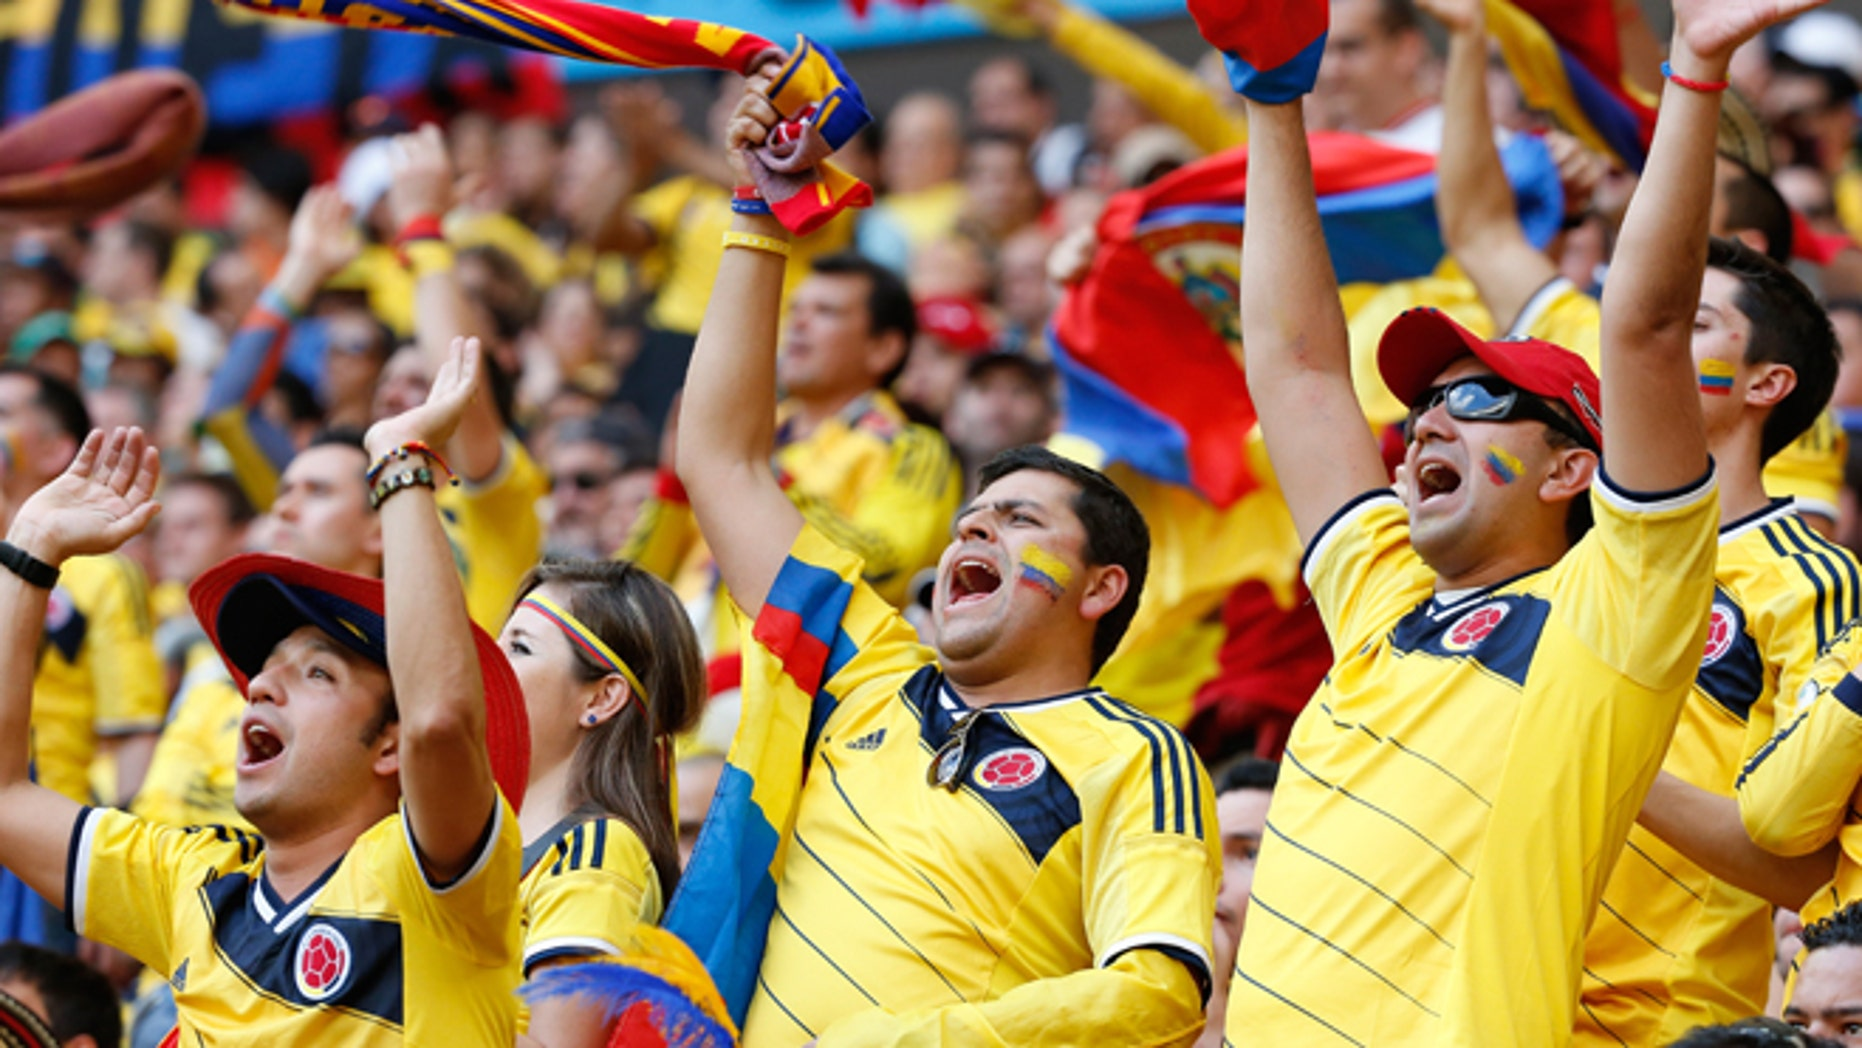 Colombia fans celebrate during a World Cup match on June 19, 2014 in Brasilia, Brazil.